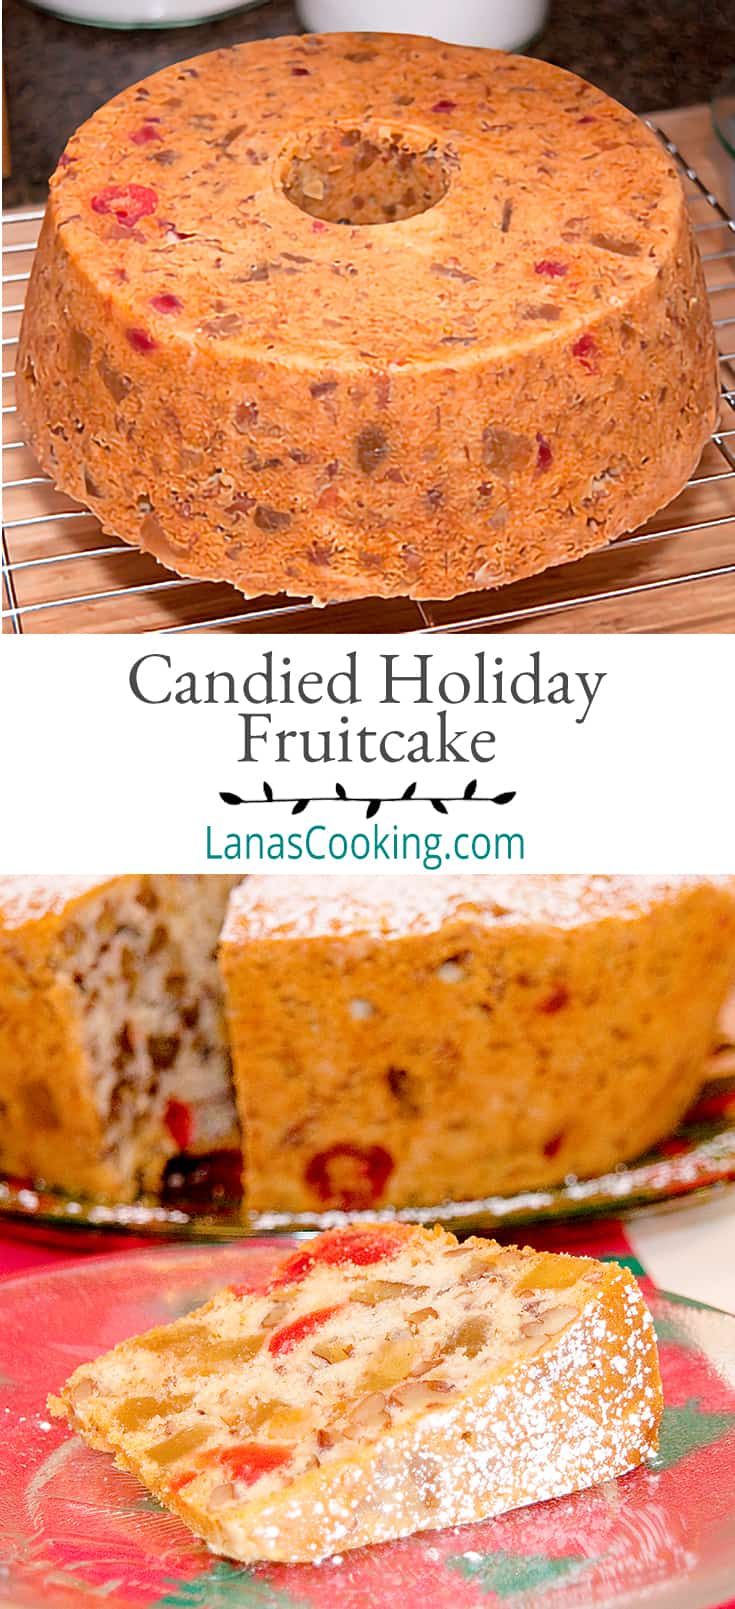 A slice of candied holiday fruitcake on a plate with remaining cake in background. Text overlay for pinning.